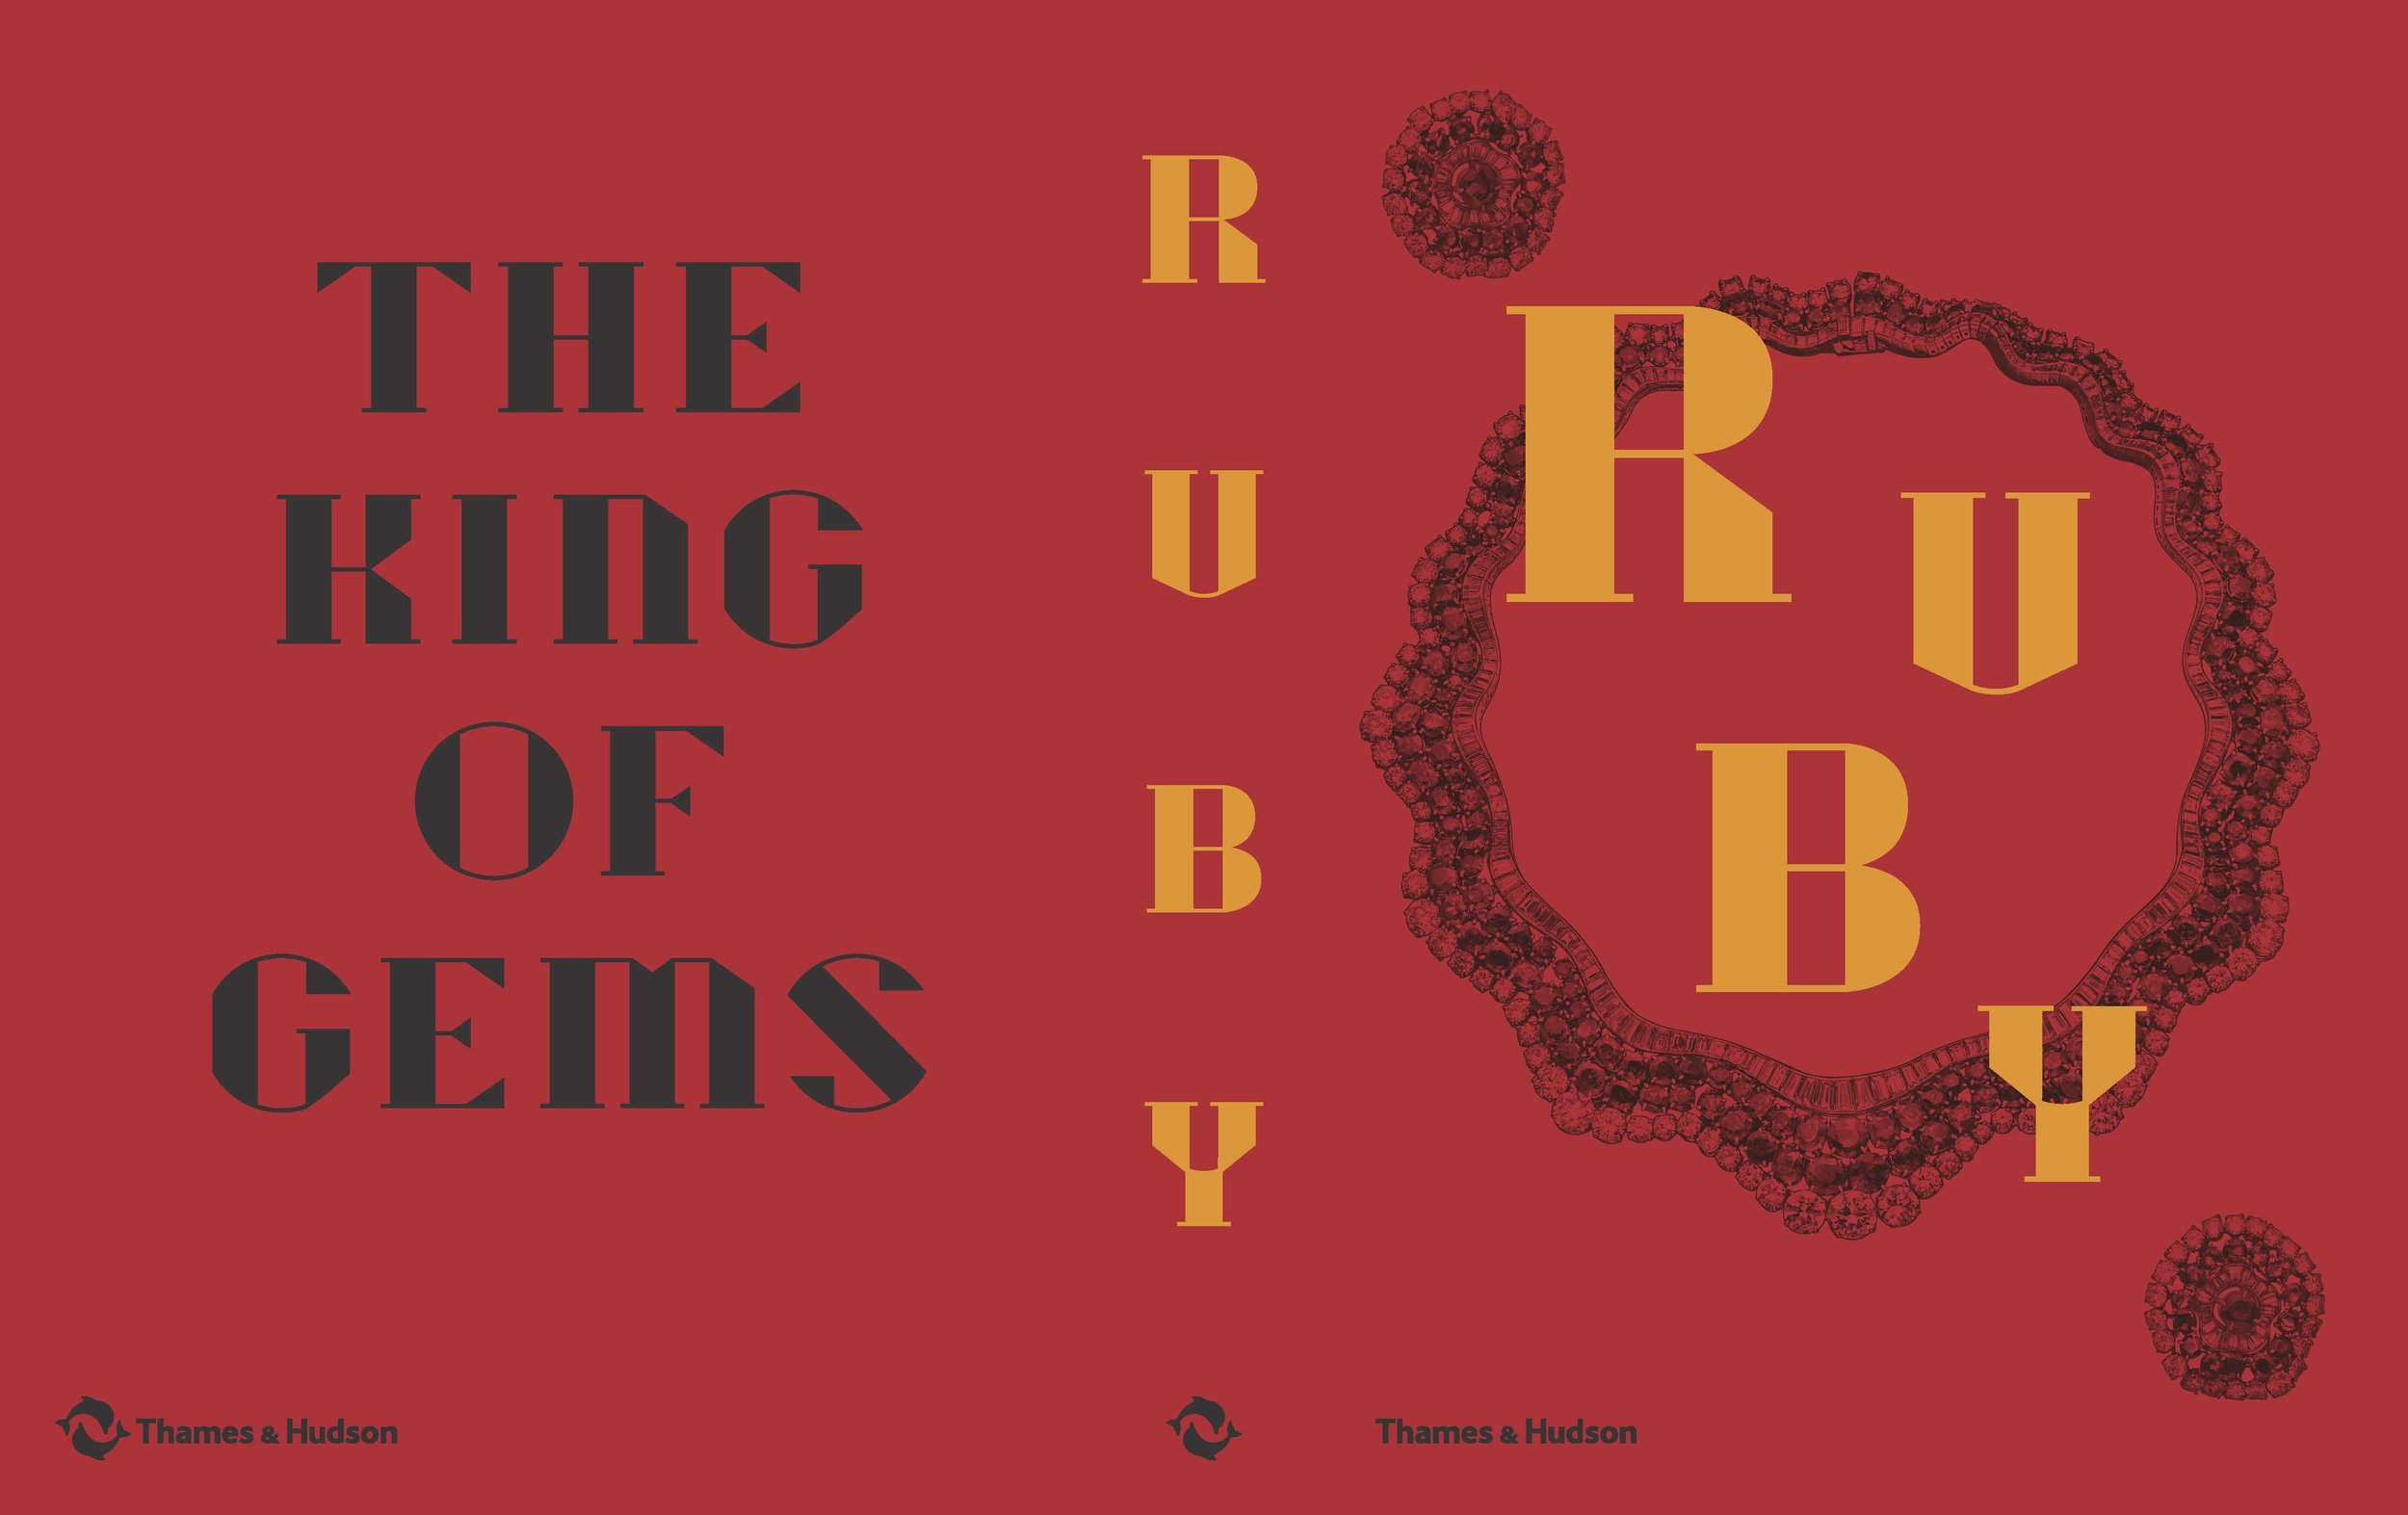 RUBY_published 2017 by Thames and Hudson in association with Violette Editions.jpg